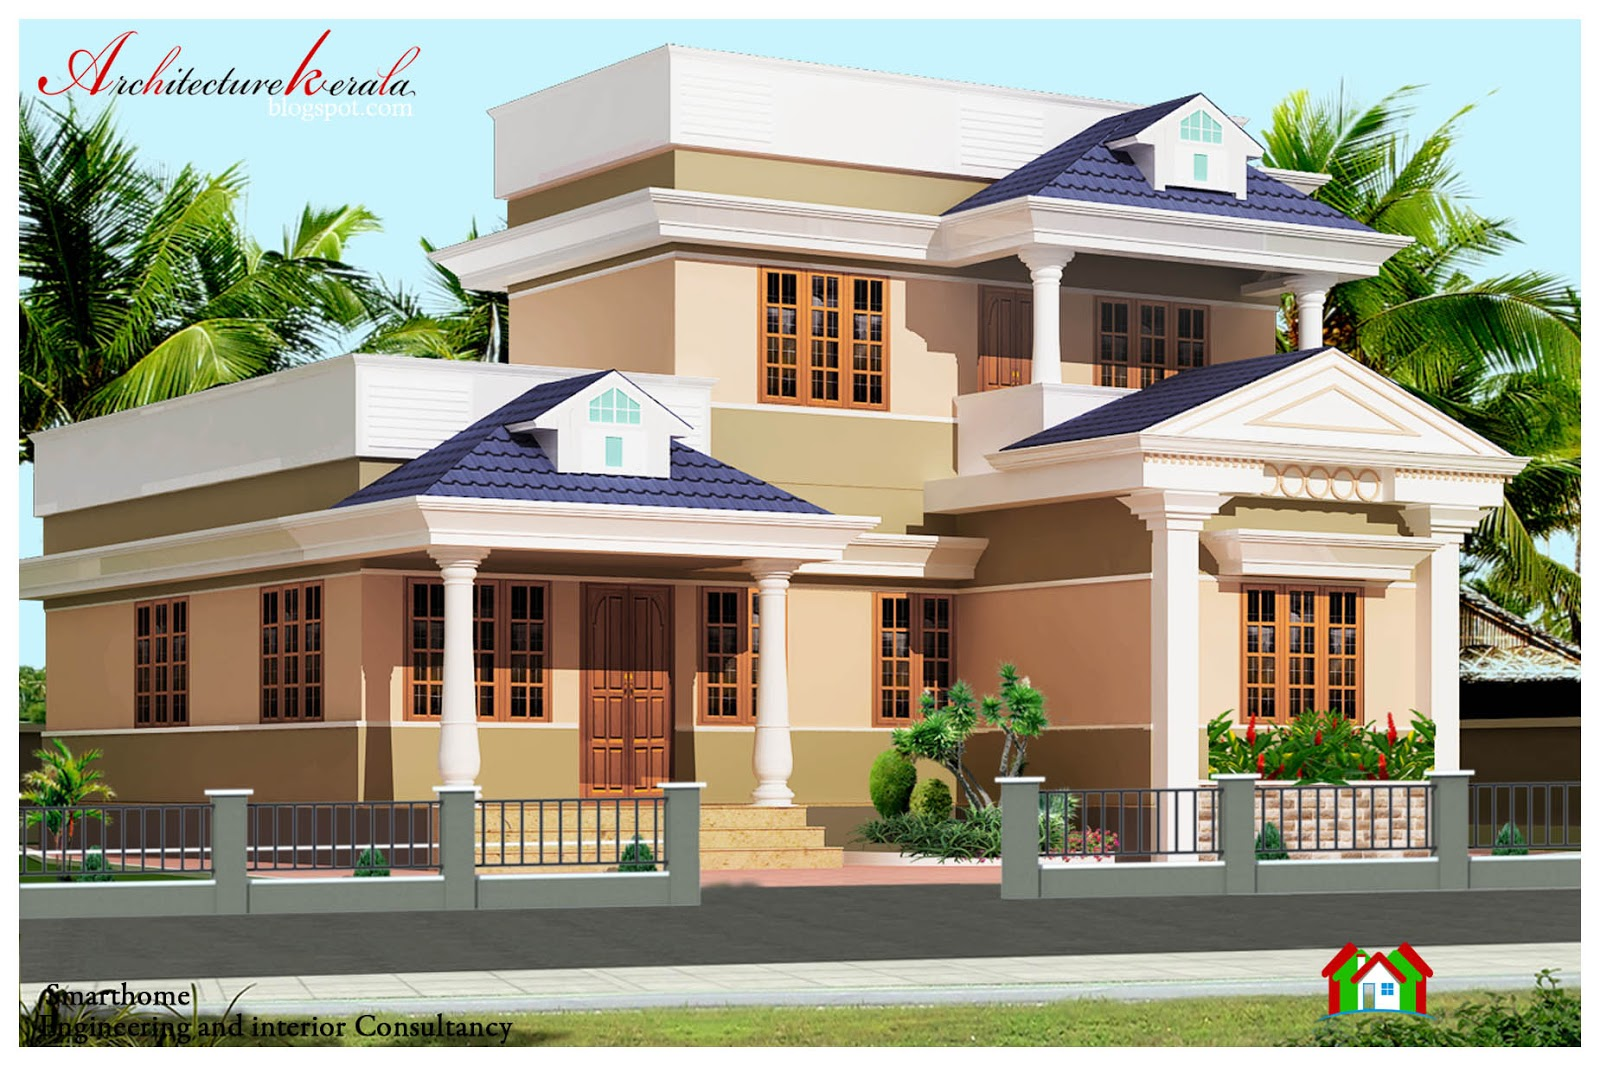 1000 Sq Ft Kerala Style House Plan on 1100 sq ft house plans and models